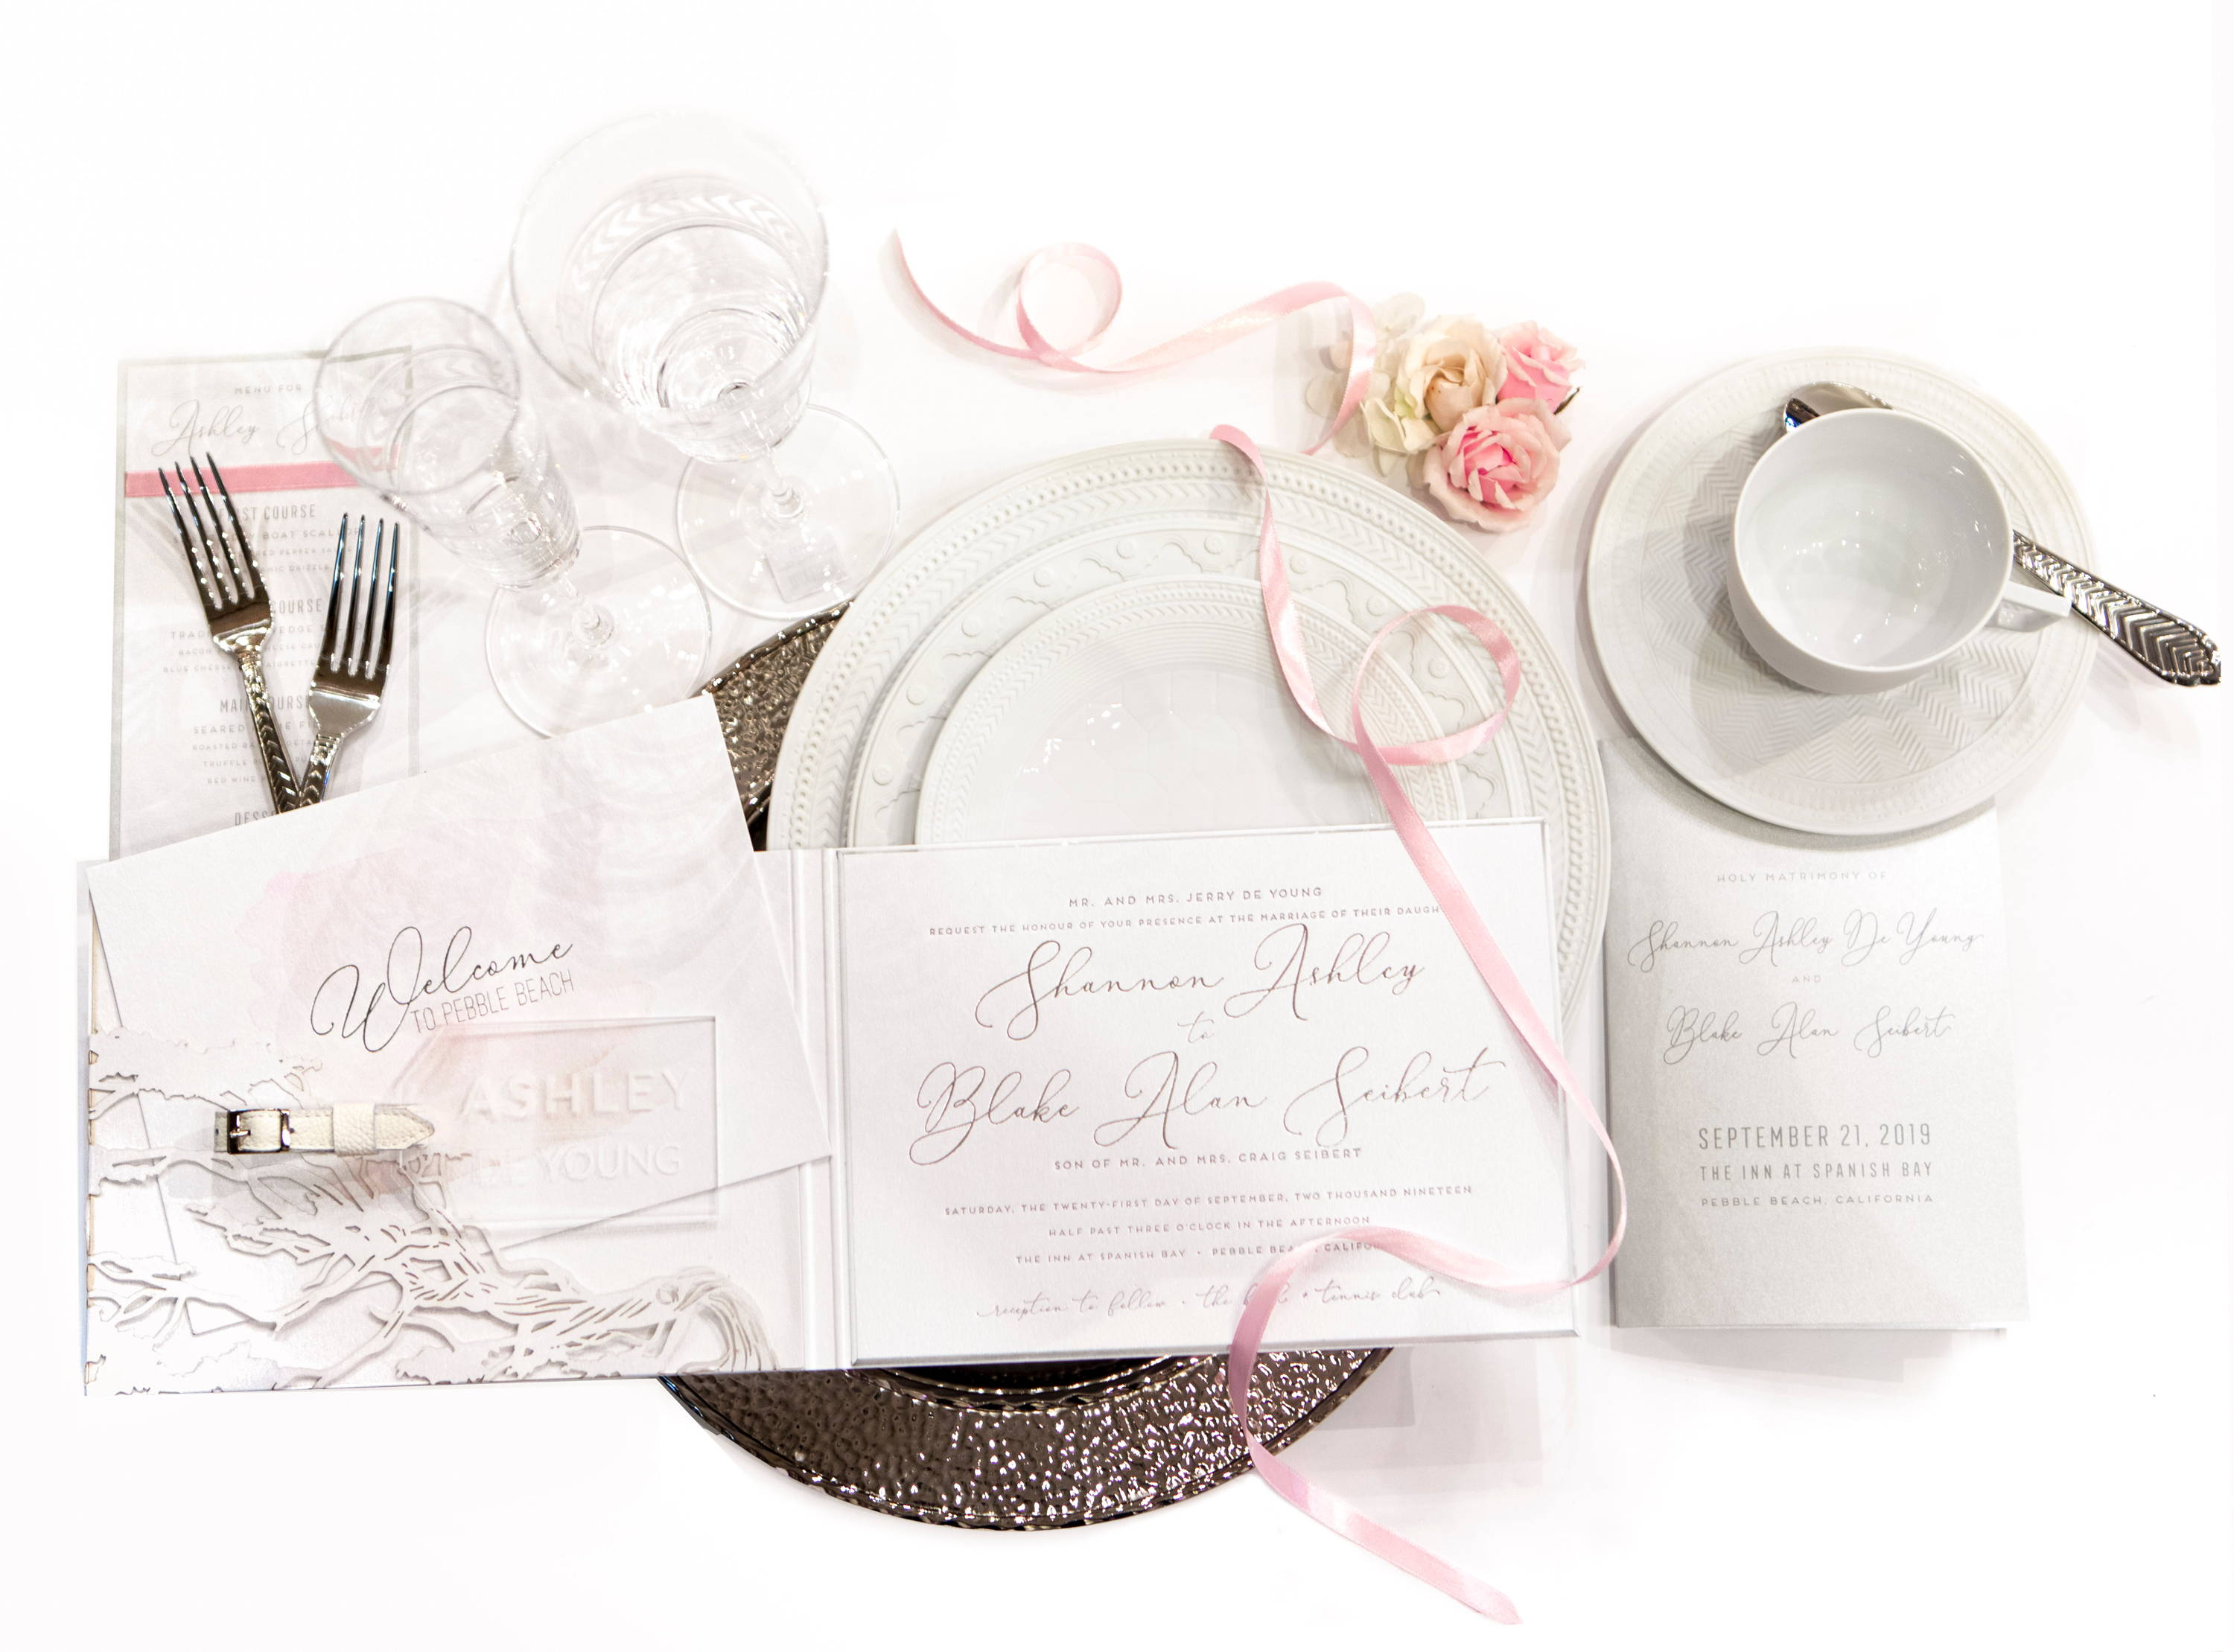 Shannon Ashley DeYoung Seibert Wedding Invitation Suite and Bridal Registry by RSVP Style